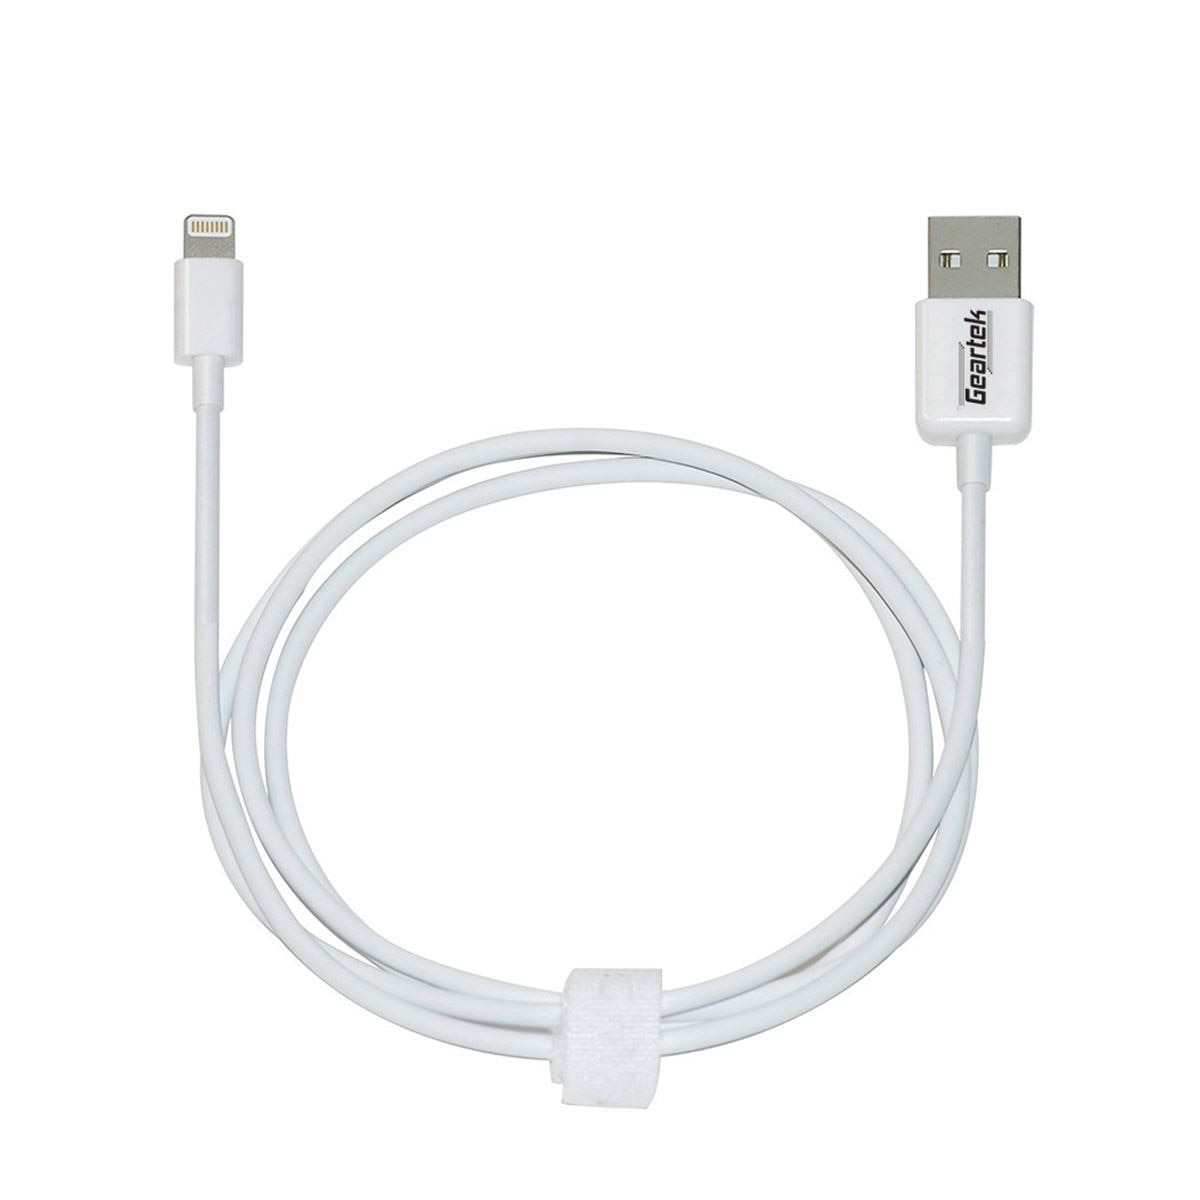 Cable Lightning USB Blanco